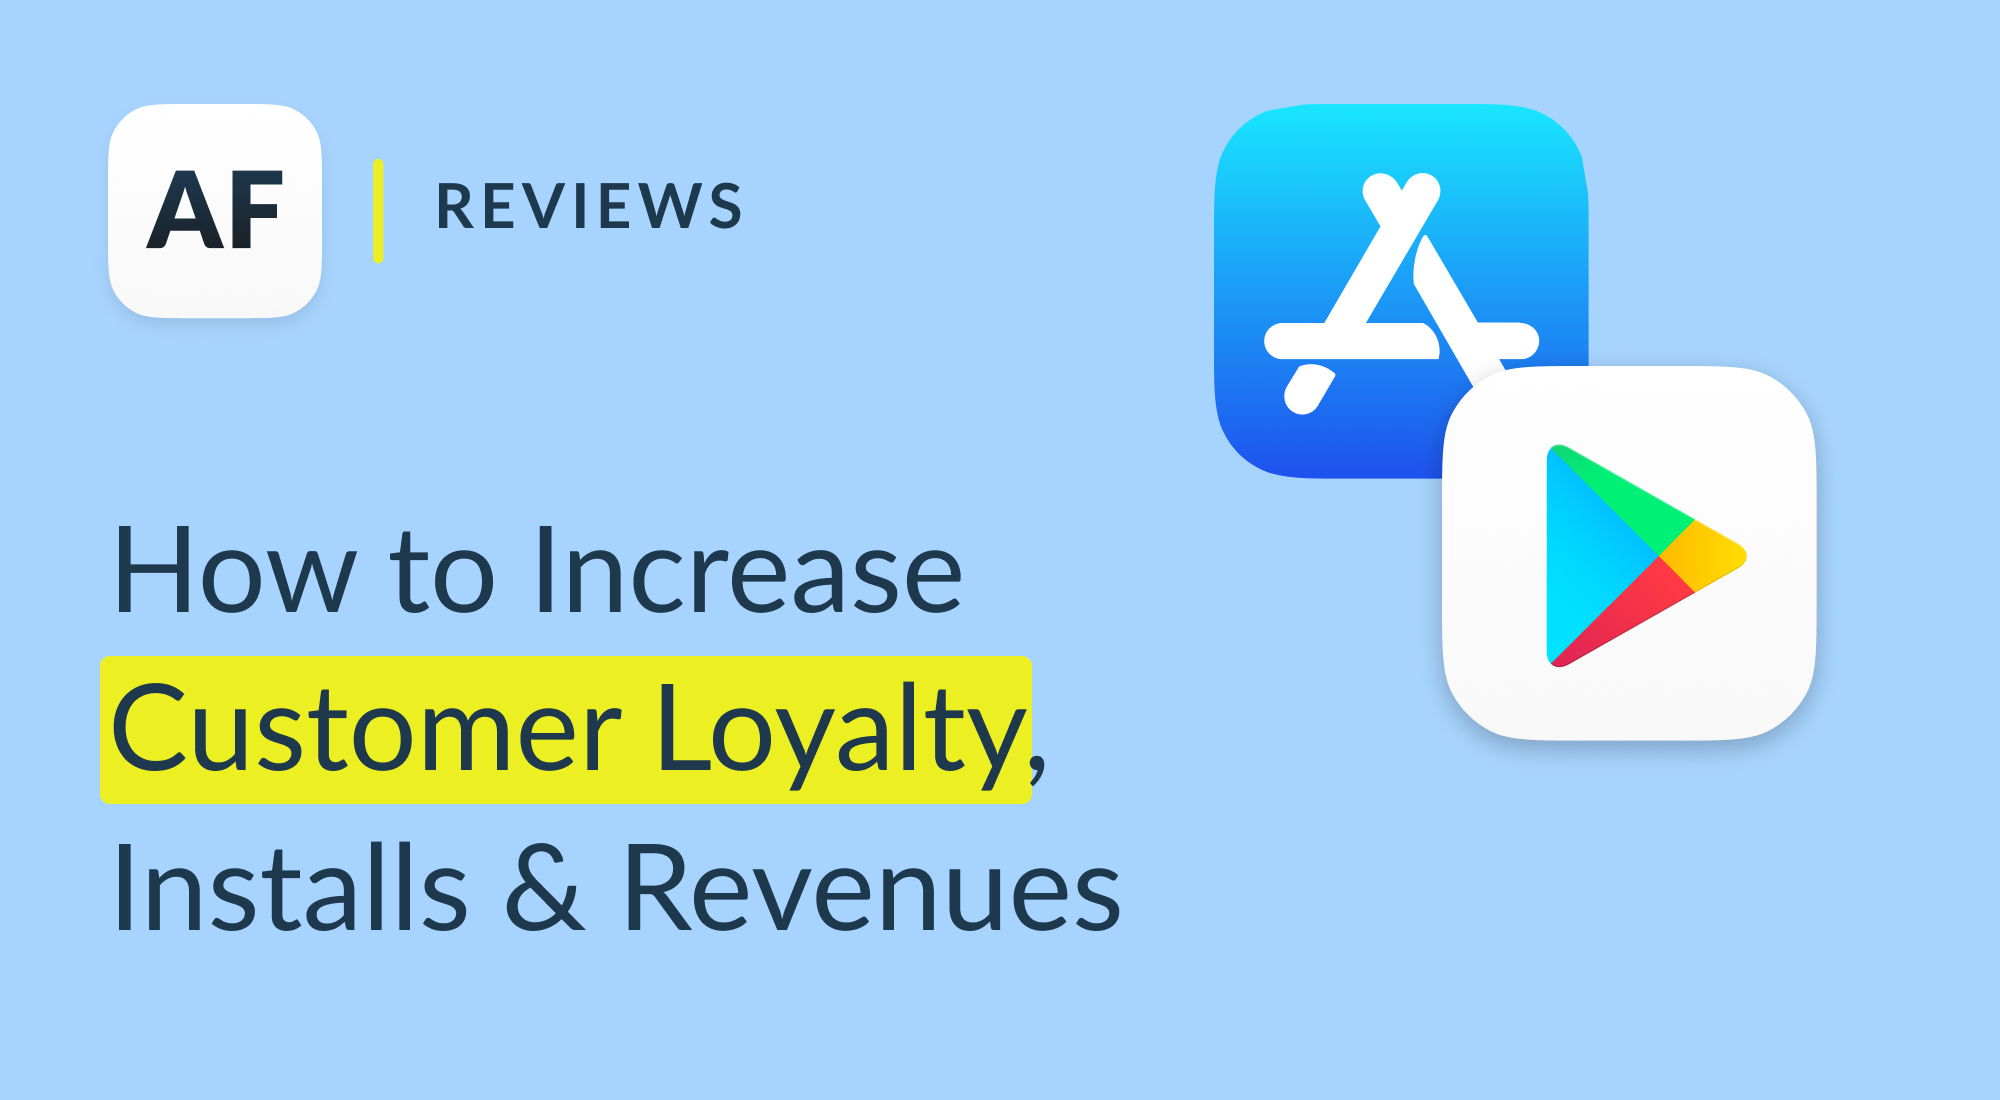 How to increase user loyalty with review responses